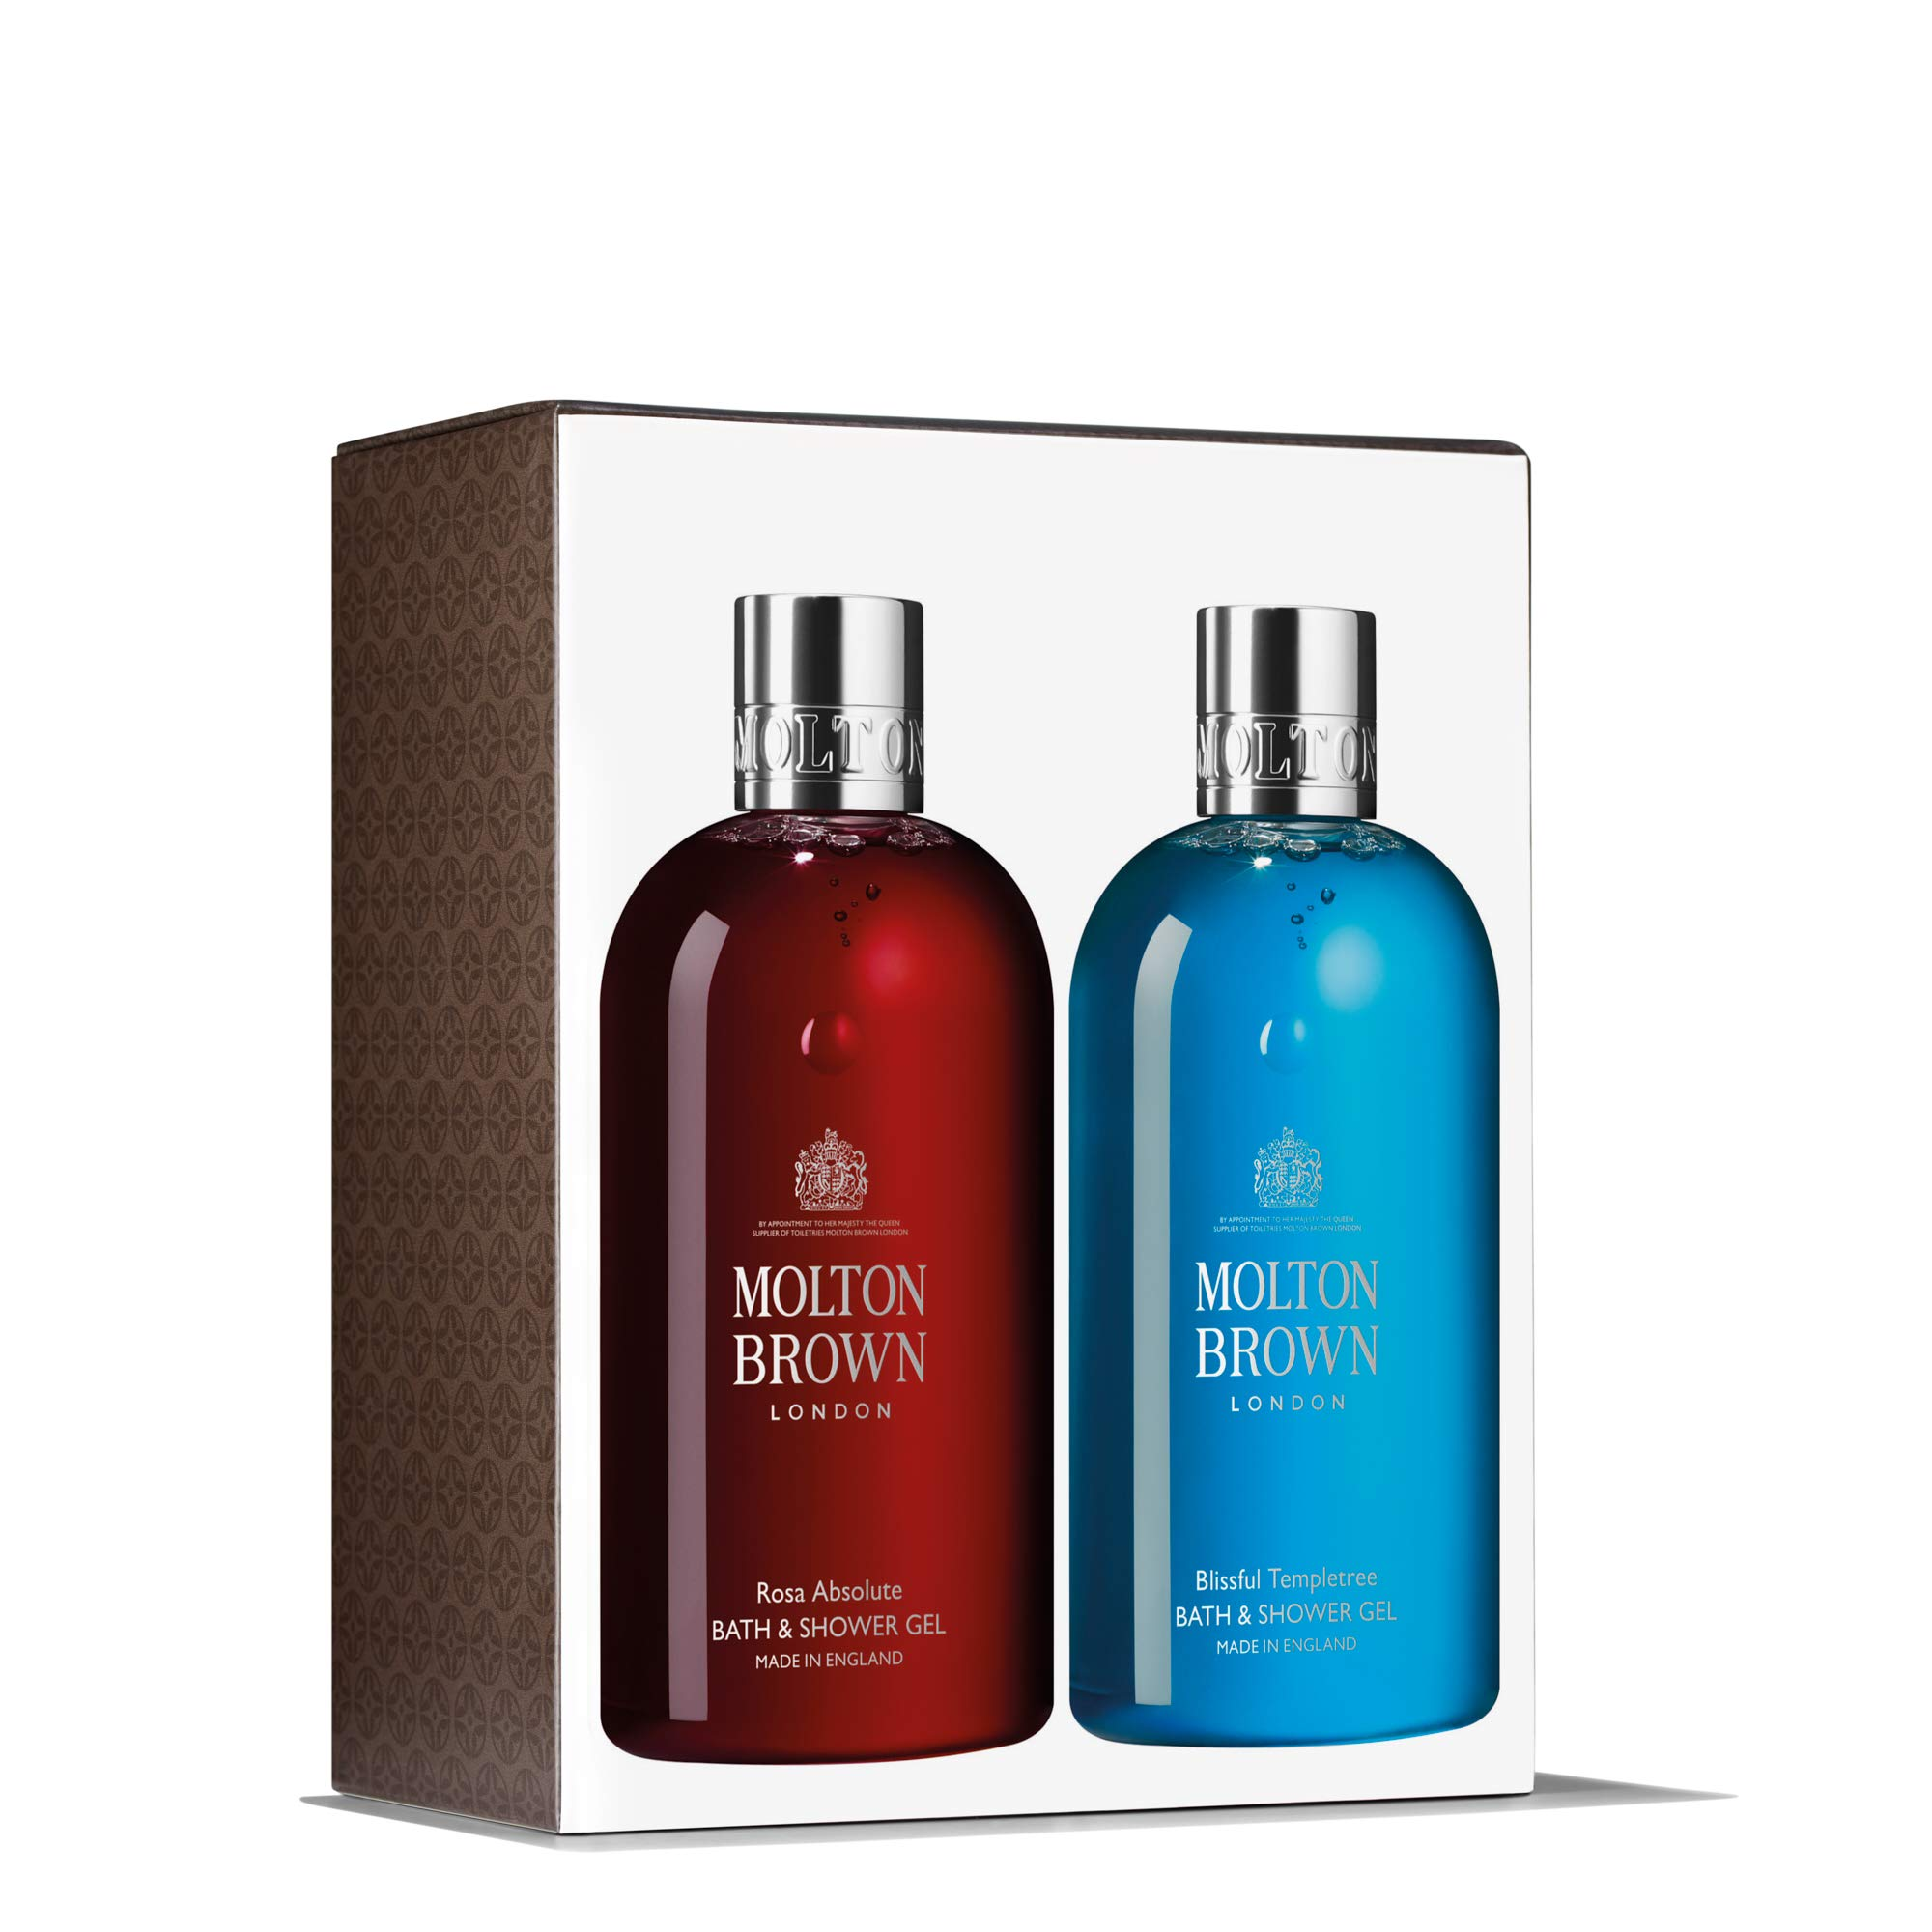 Molton Brown Floral Bath & Shower Gel Gift Set (2 x 300ml)